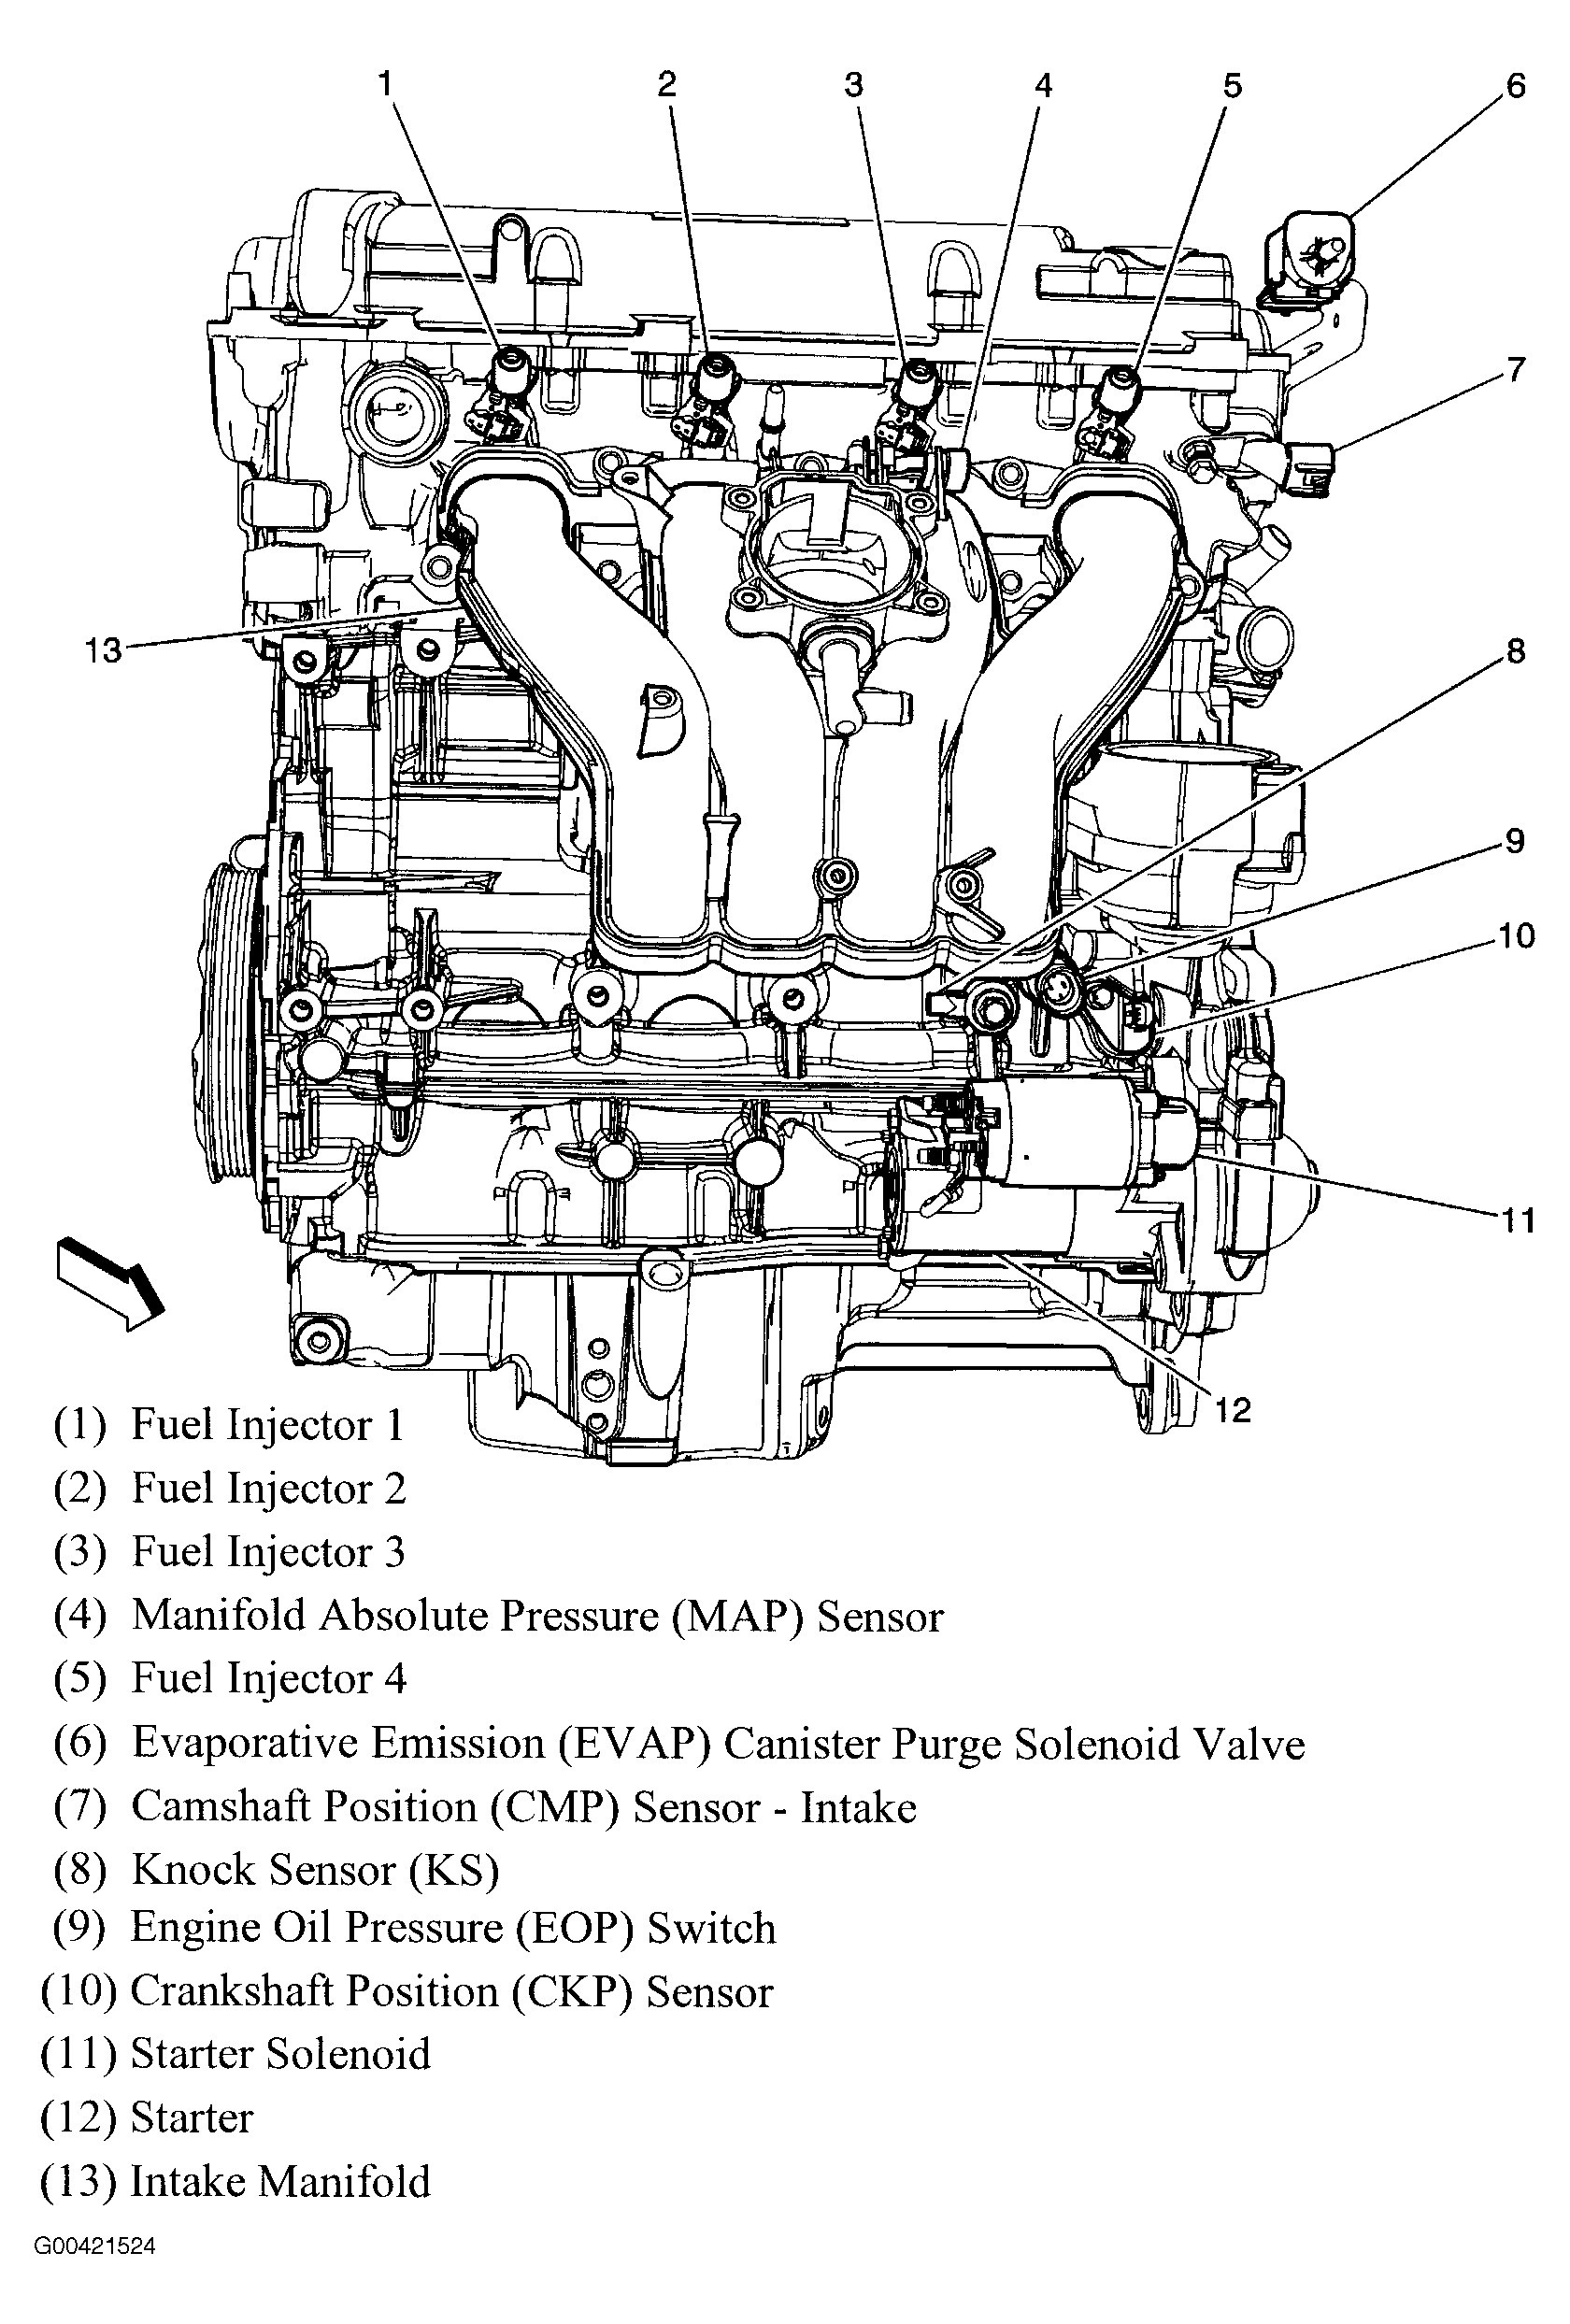 hight resolution of 1999 pontiac montana engine diagram wiring diagram fascinating 2001 pontiac montana engine diagrams http wwwjustanswercom pontiac